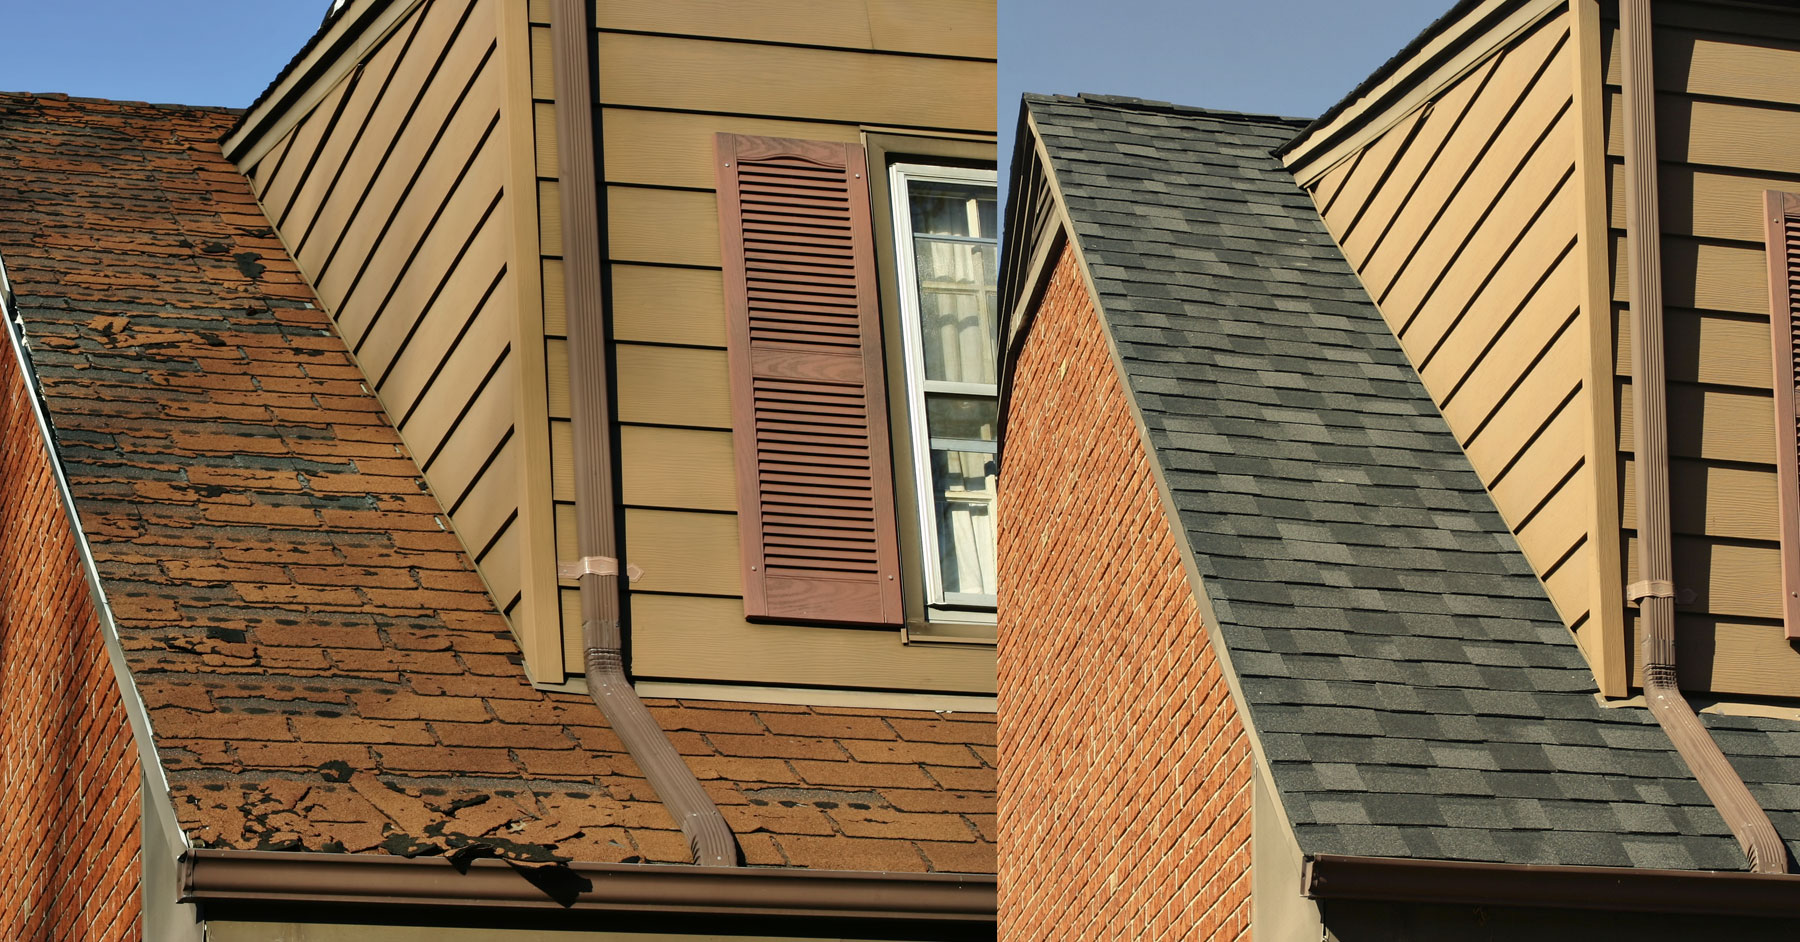 5 Reasons You Should Not Mix Old And New Shingles When